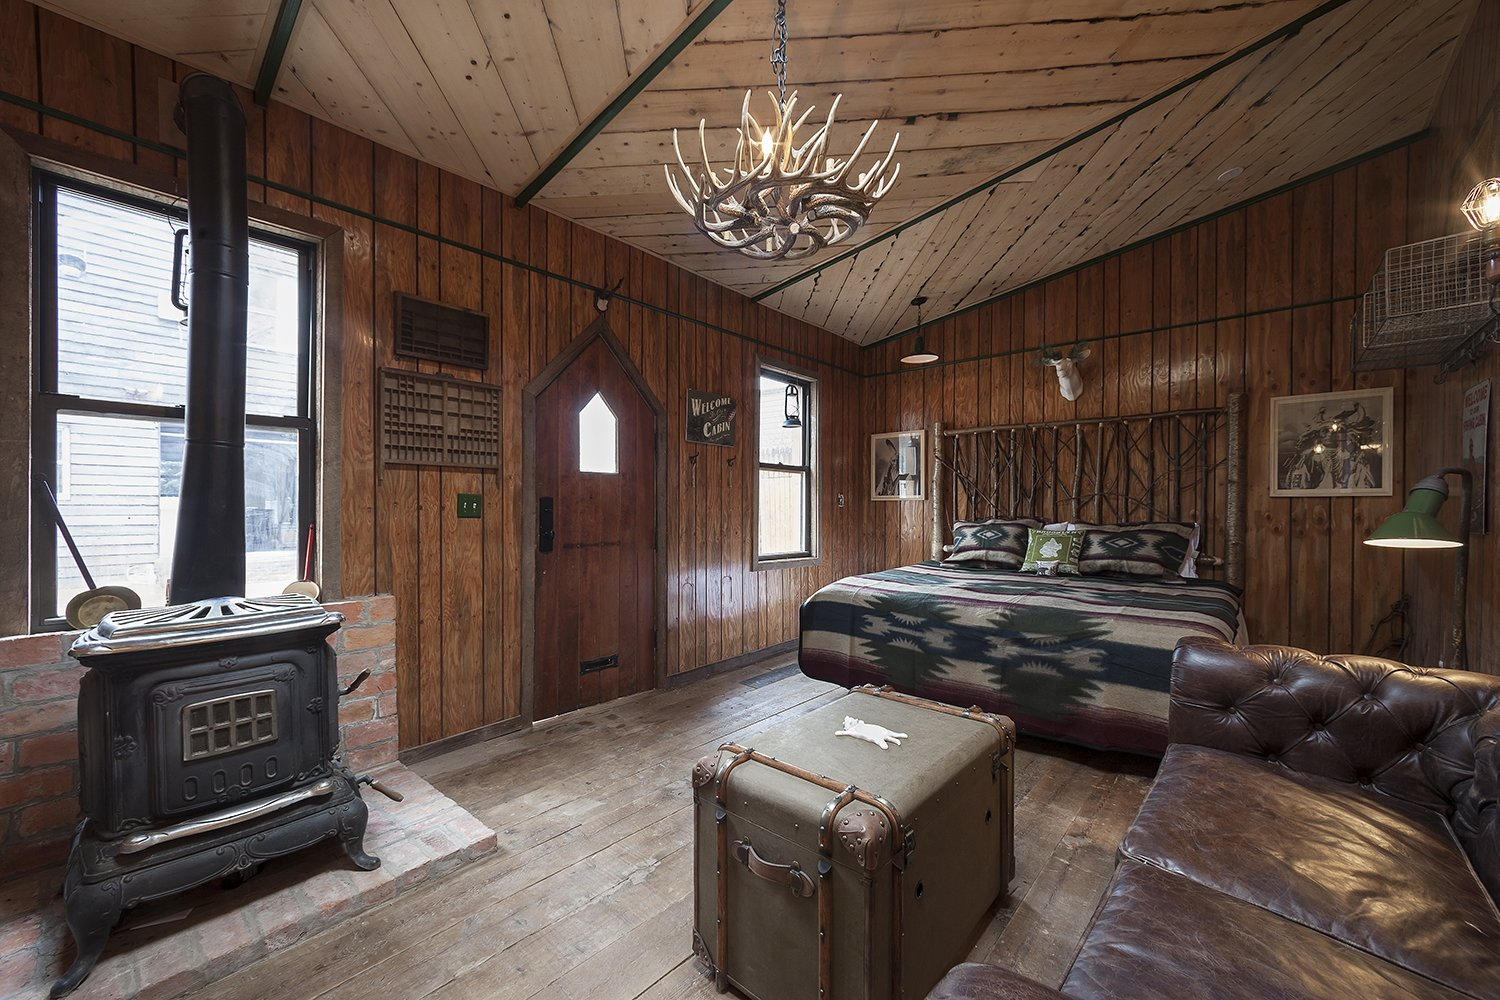 Photo 4 of 8 in Williamsburg's Western-style Lodge Unites Traveling Creatives